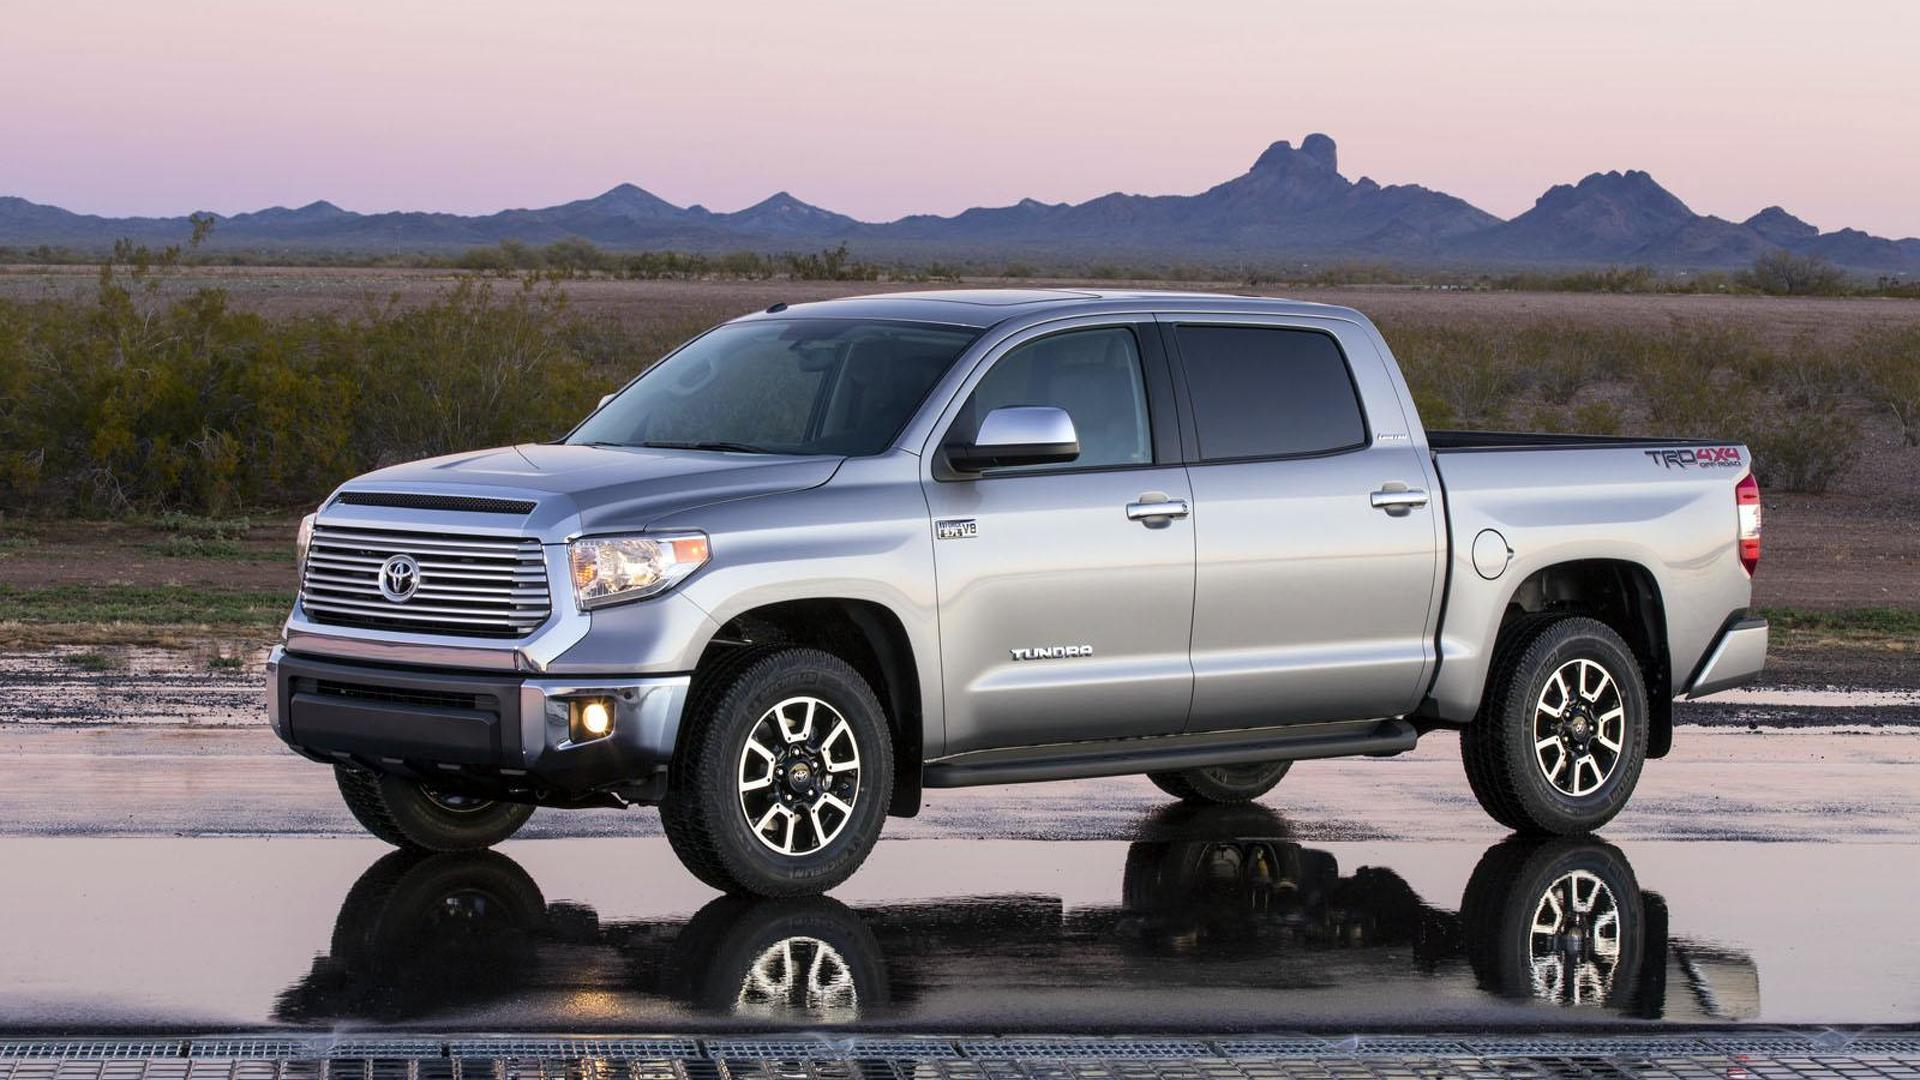 2016 Toyota Tundra could offer a Cummins turbodiesel engine - report